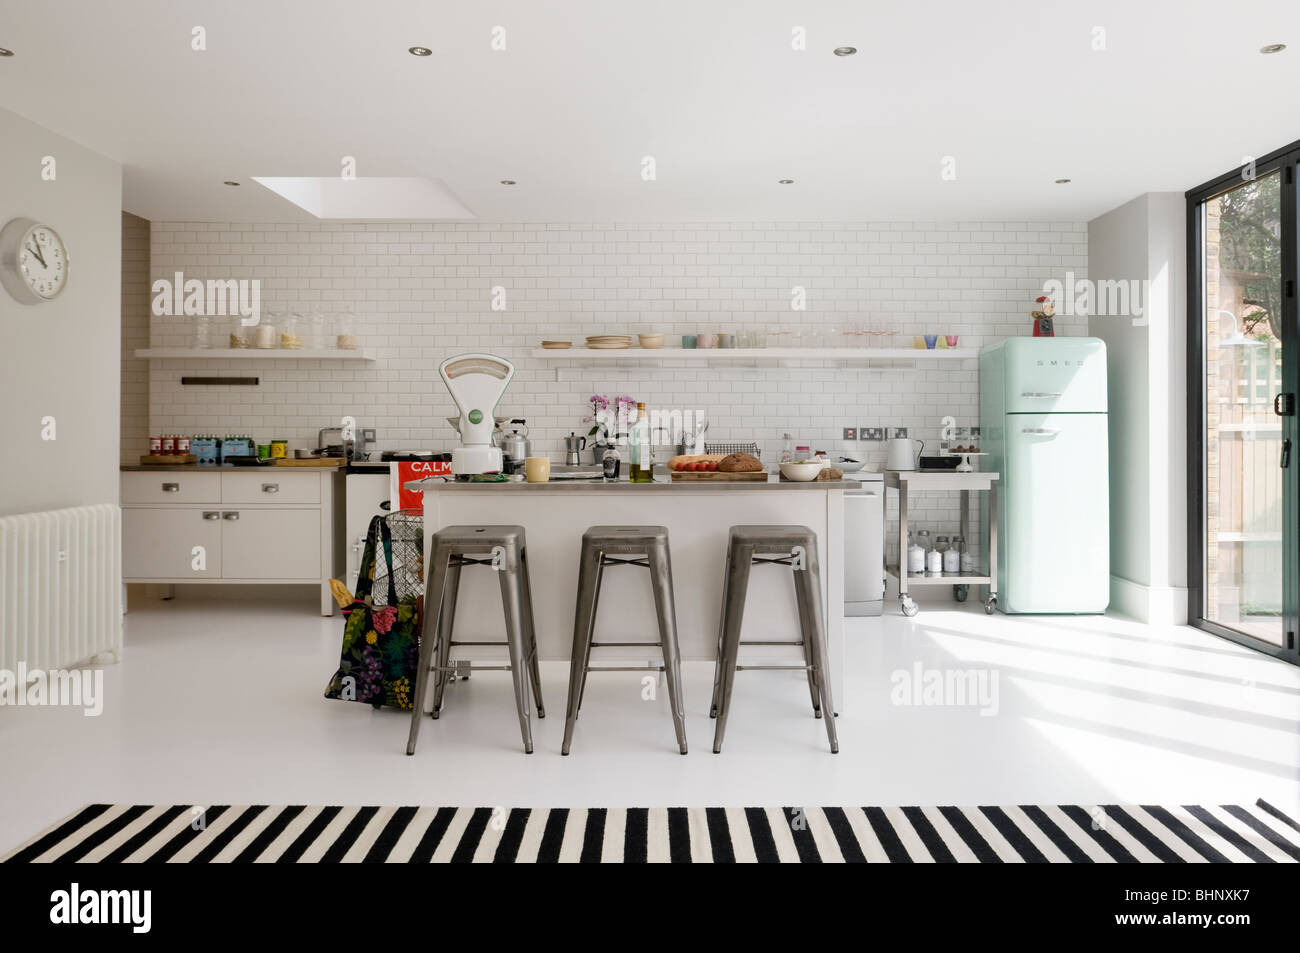 Open plan white-tiled kitchen with barstools and retro fridge - Stock Image